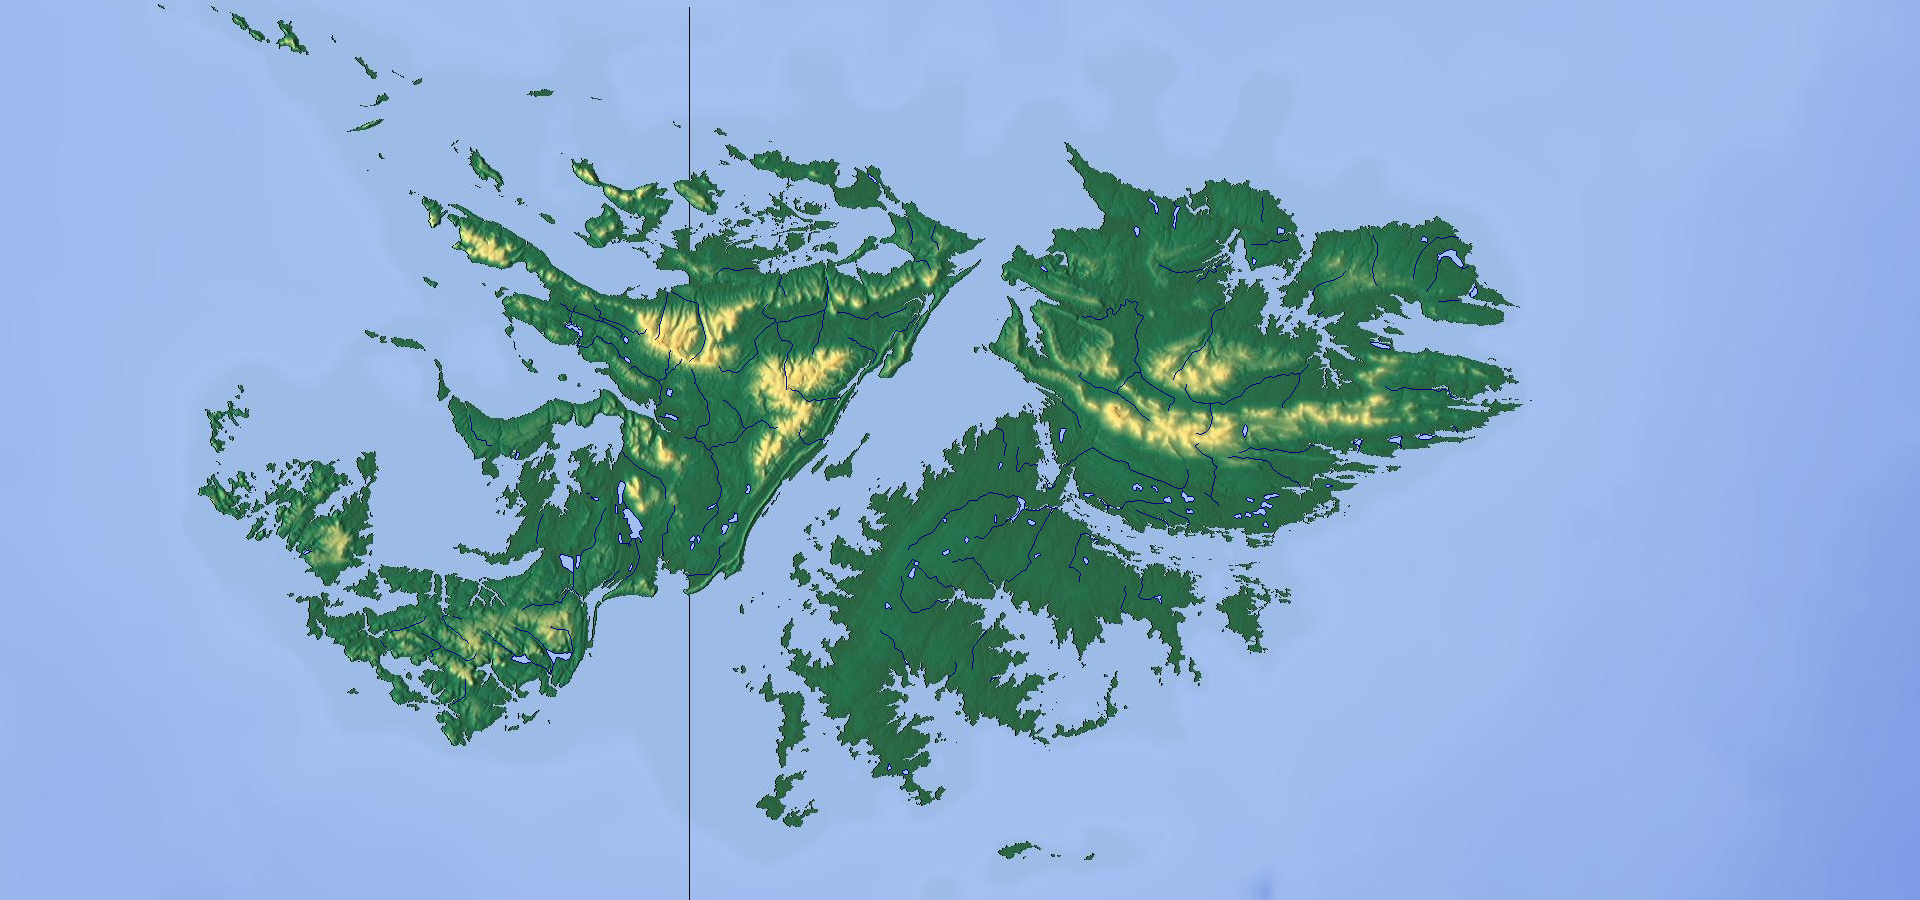 Topographic map of the Falkland Islands MAPS Pinterest